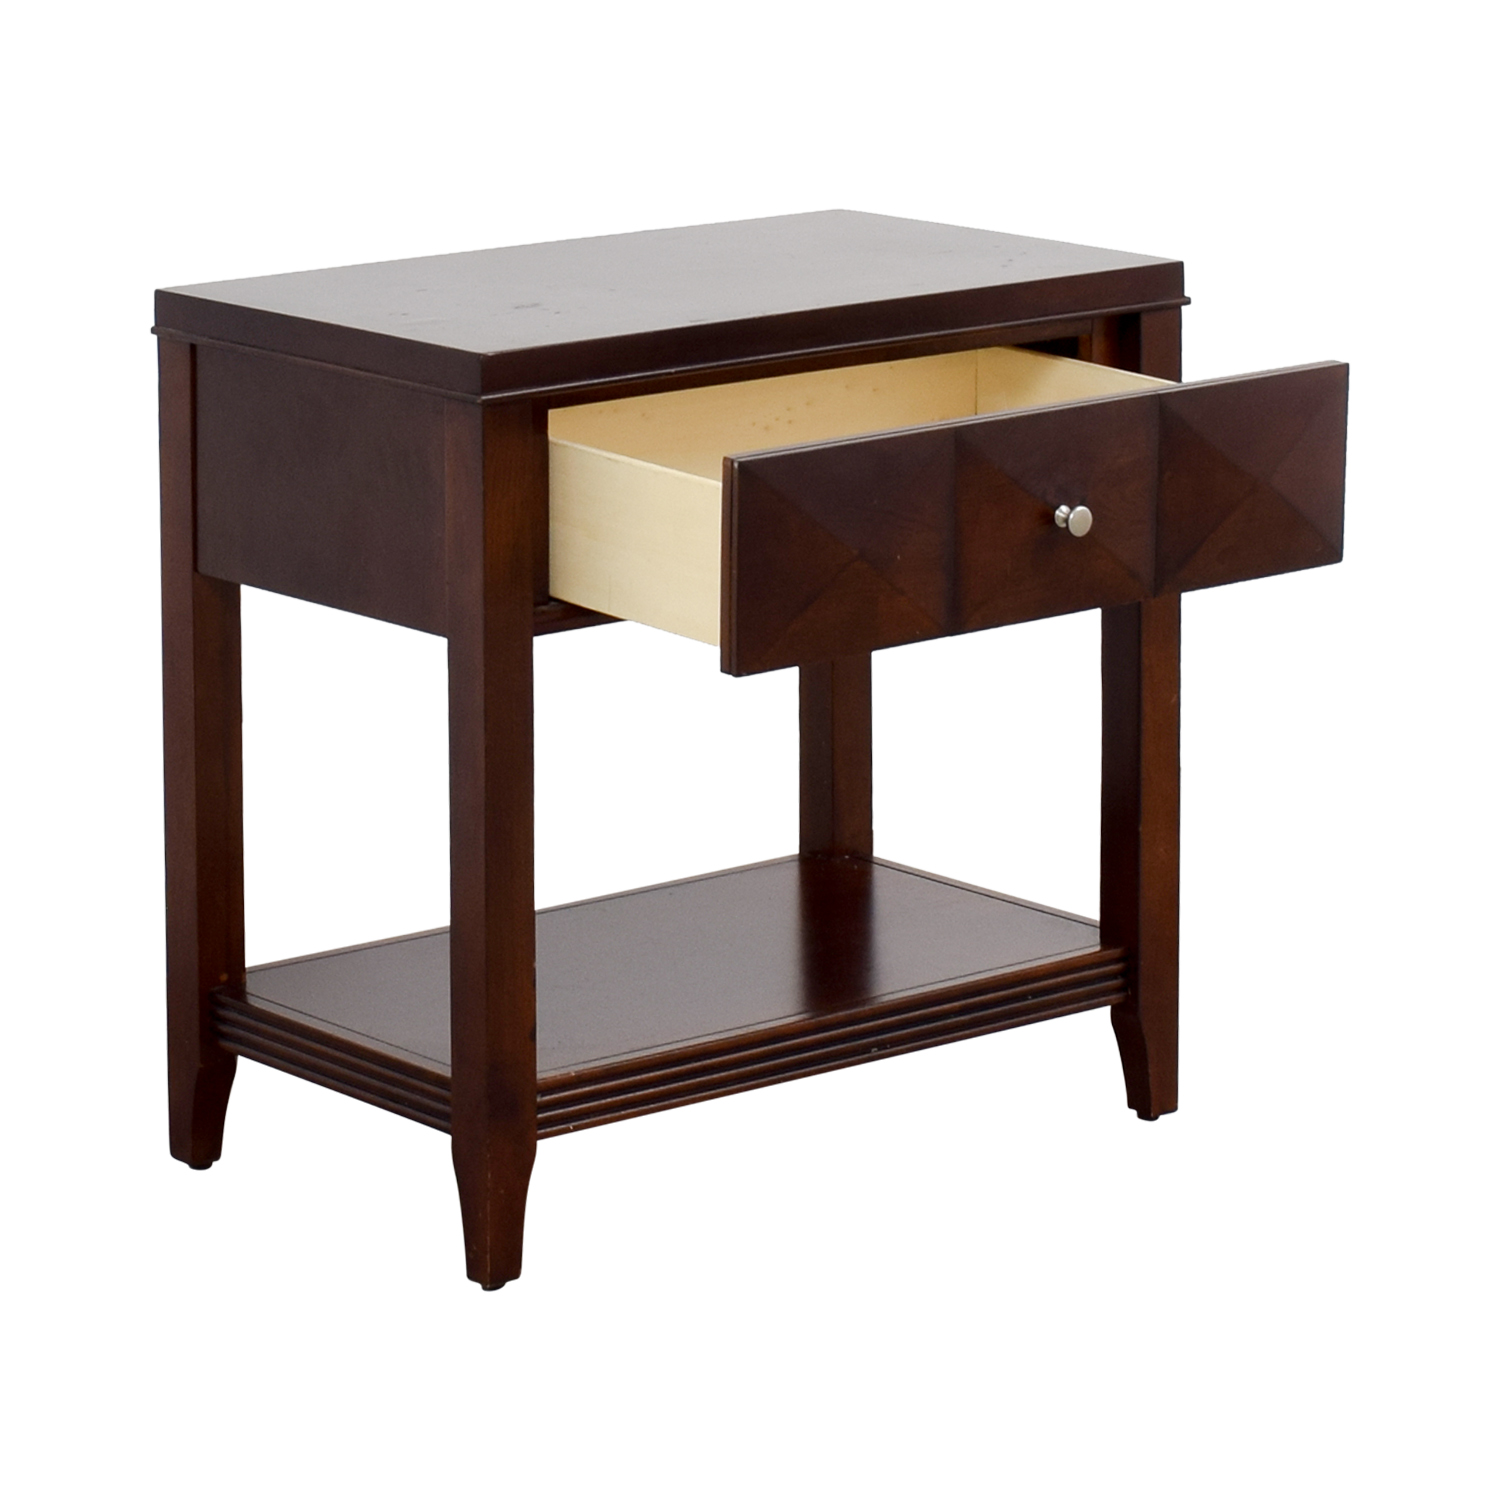 Raymour & Flanigan Raymour & Flanigan Espresso Single-Drawer Nightstand End Tables